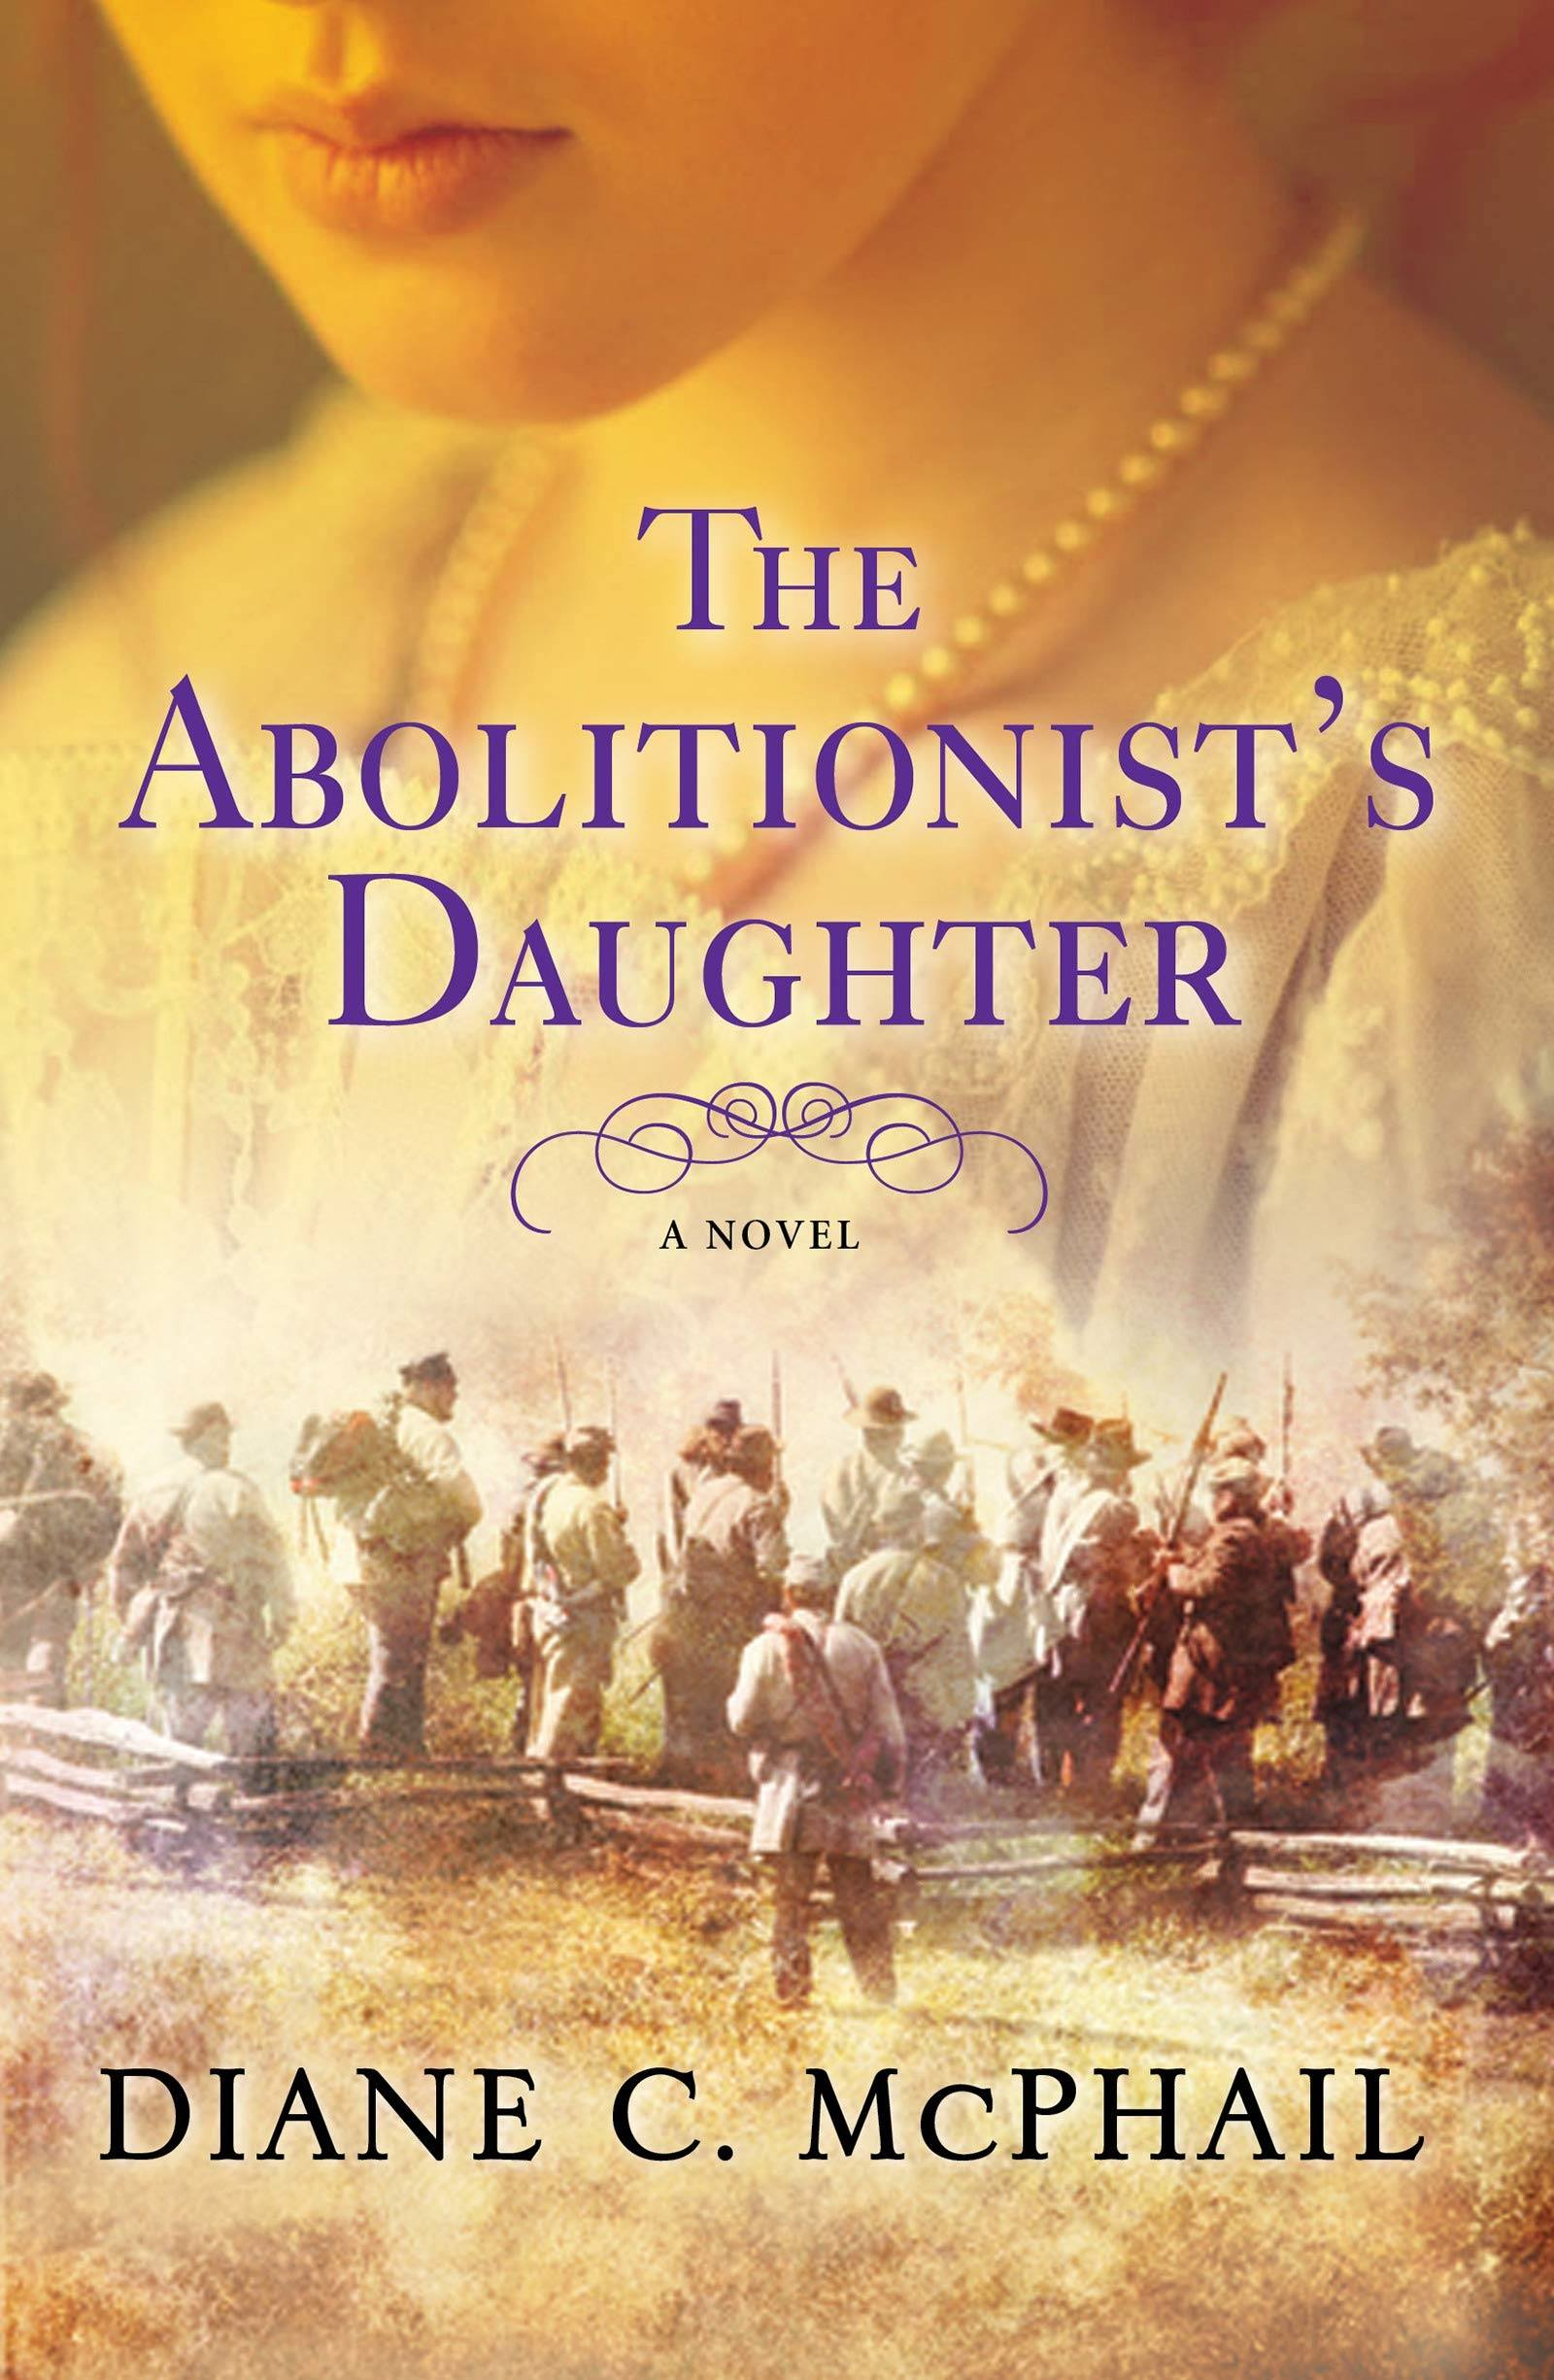 Book cover, The Abolitionist's Daughter by Diane C. McPhail.